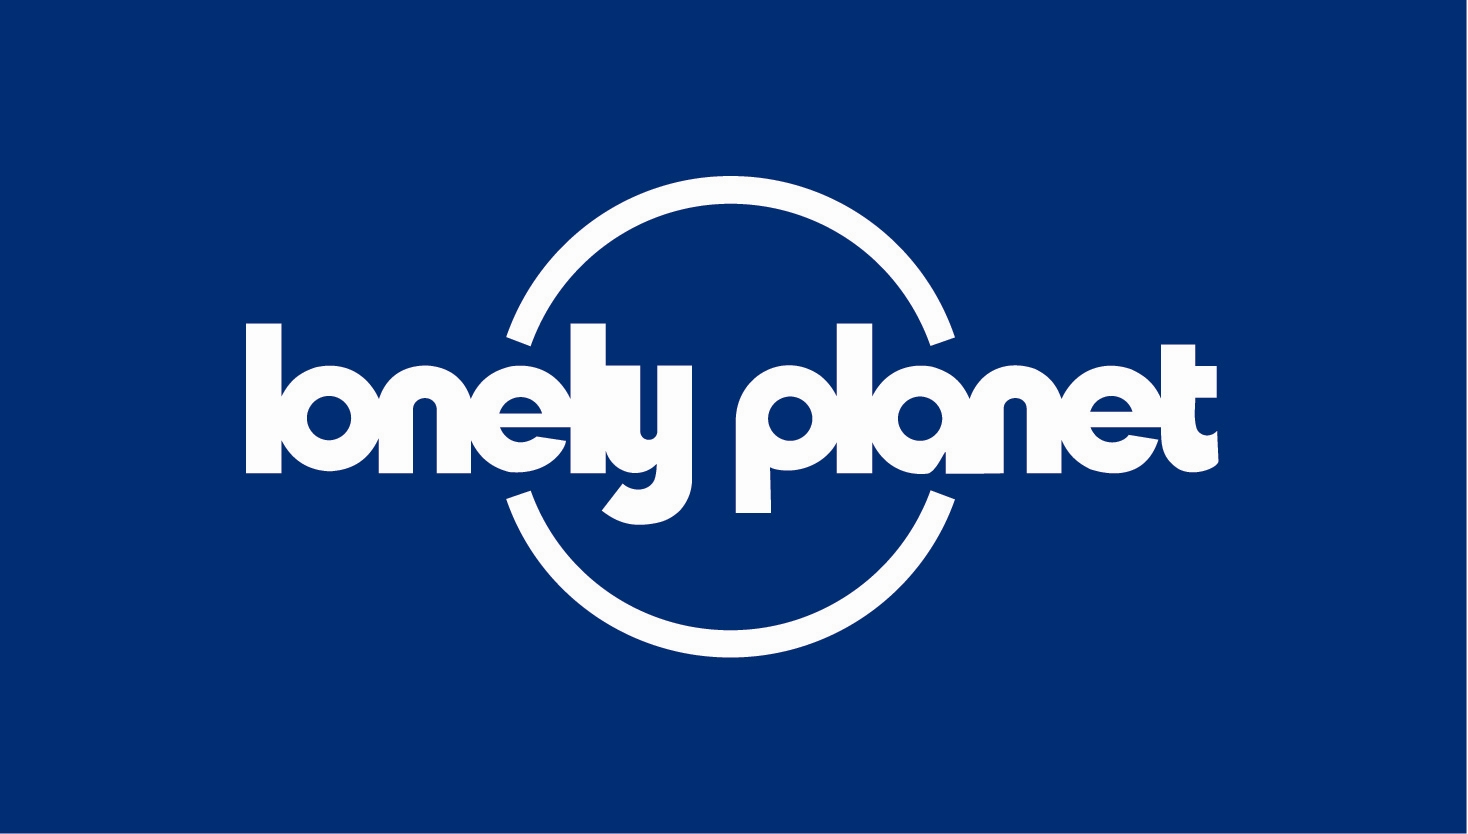 Lonely Planet Spring Spring 2017 Issue, Globetrotter/Gear/Eco-Friendly Travel Essentials